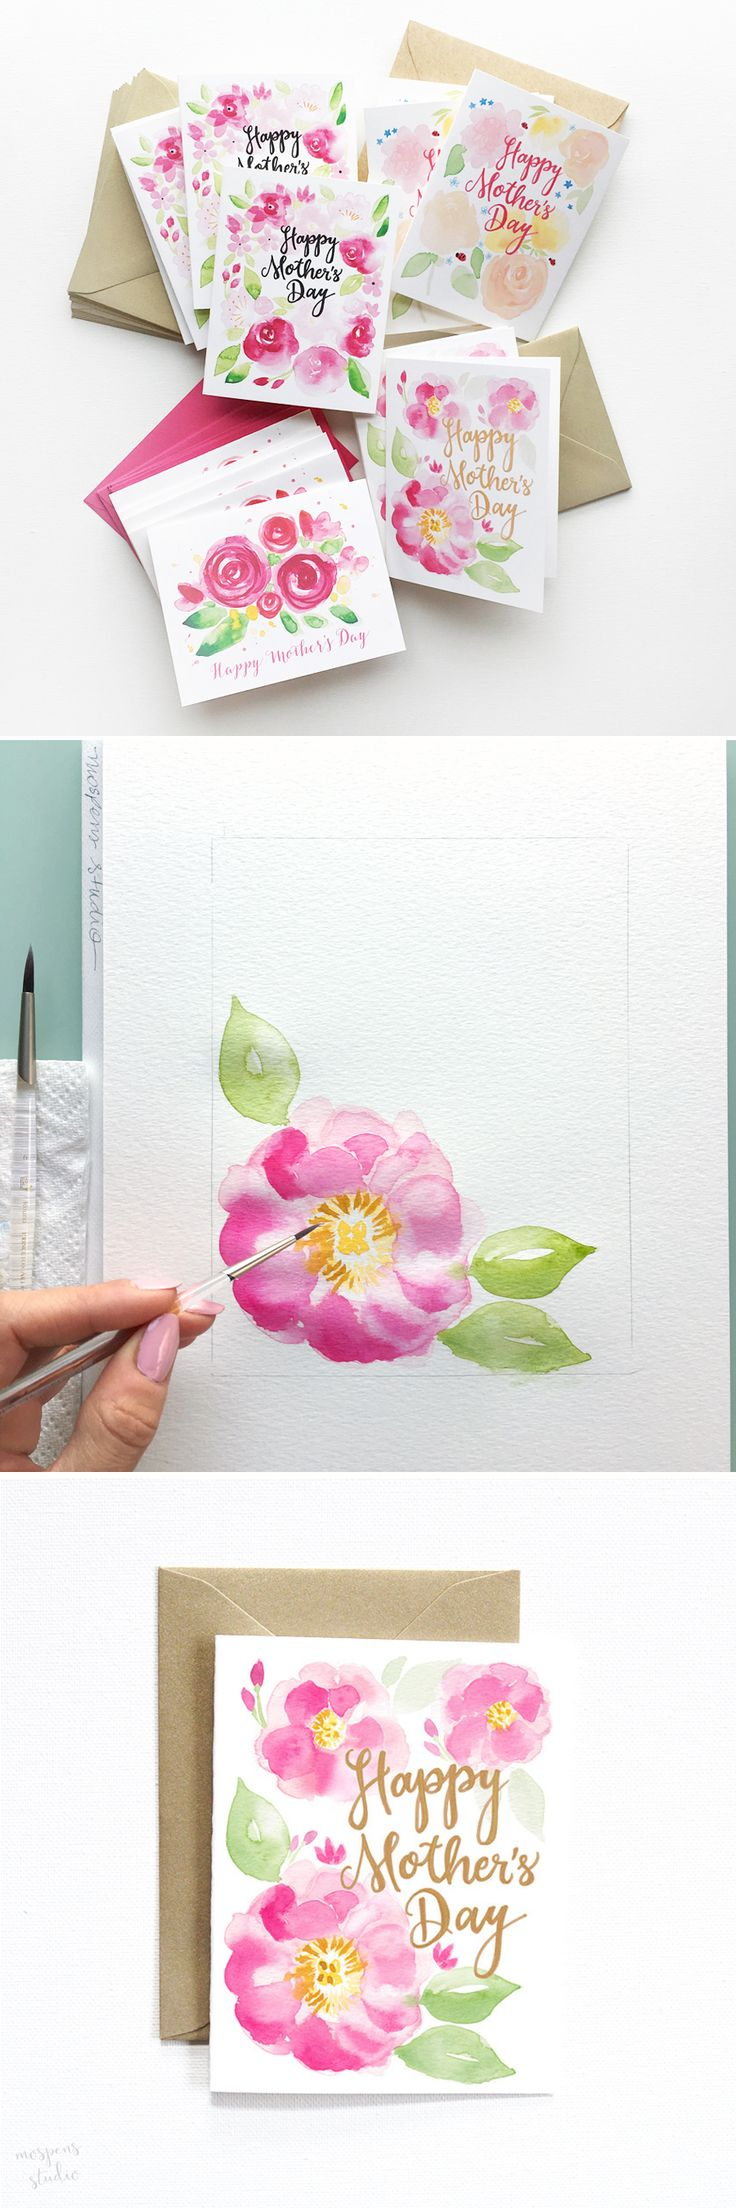 Beautiful watercolor floral Mother's Day Cards by artist Michelle Mospens - www.mospensstudio.com